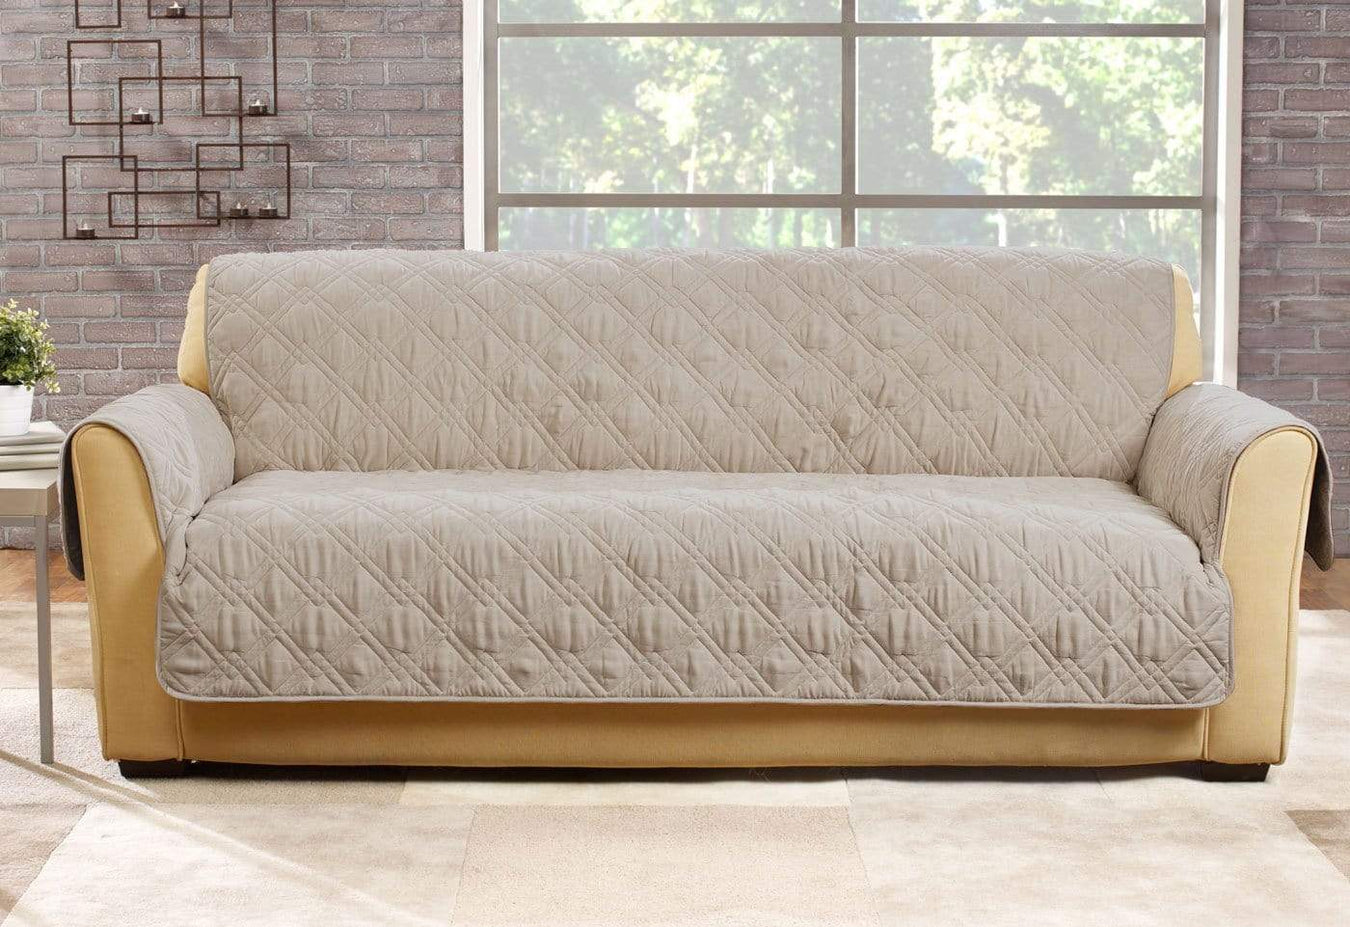 Microfiber Pet Sofa Quilted Furniture Cover